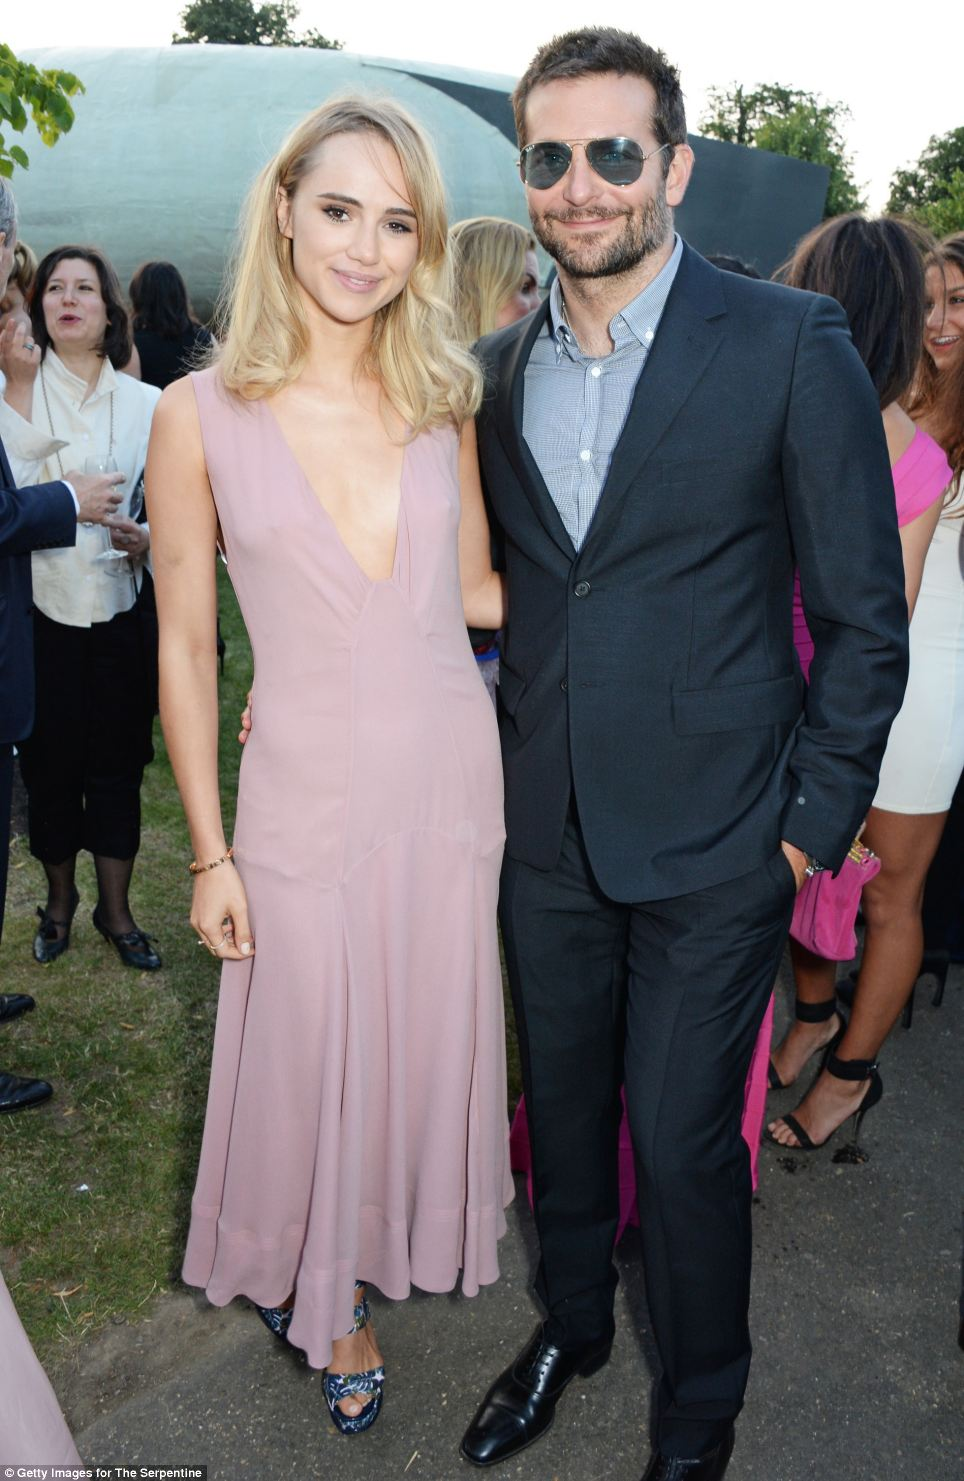 So happy: Bradley Cooper and Suki Waterhouse look smitten as they arrive at the Serpentine for the annual Serpentine Gallery Summer Party in Hyde Park on Tuesday